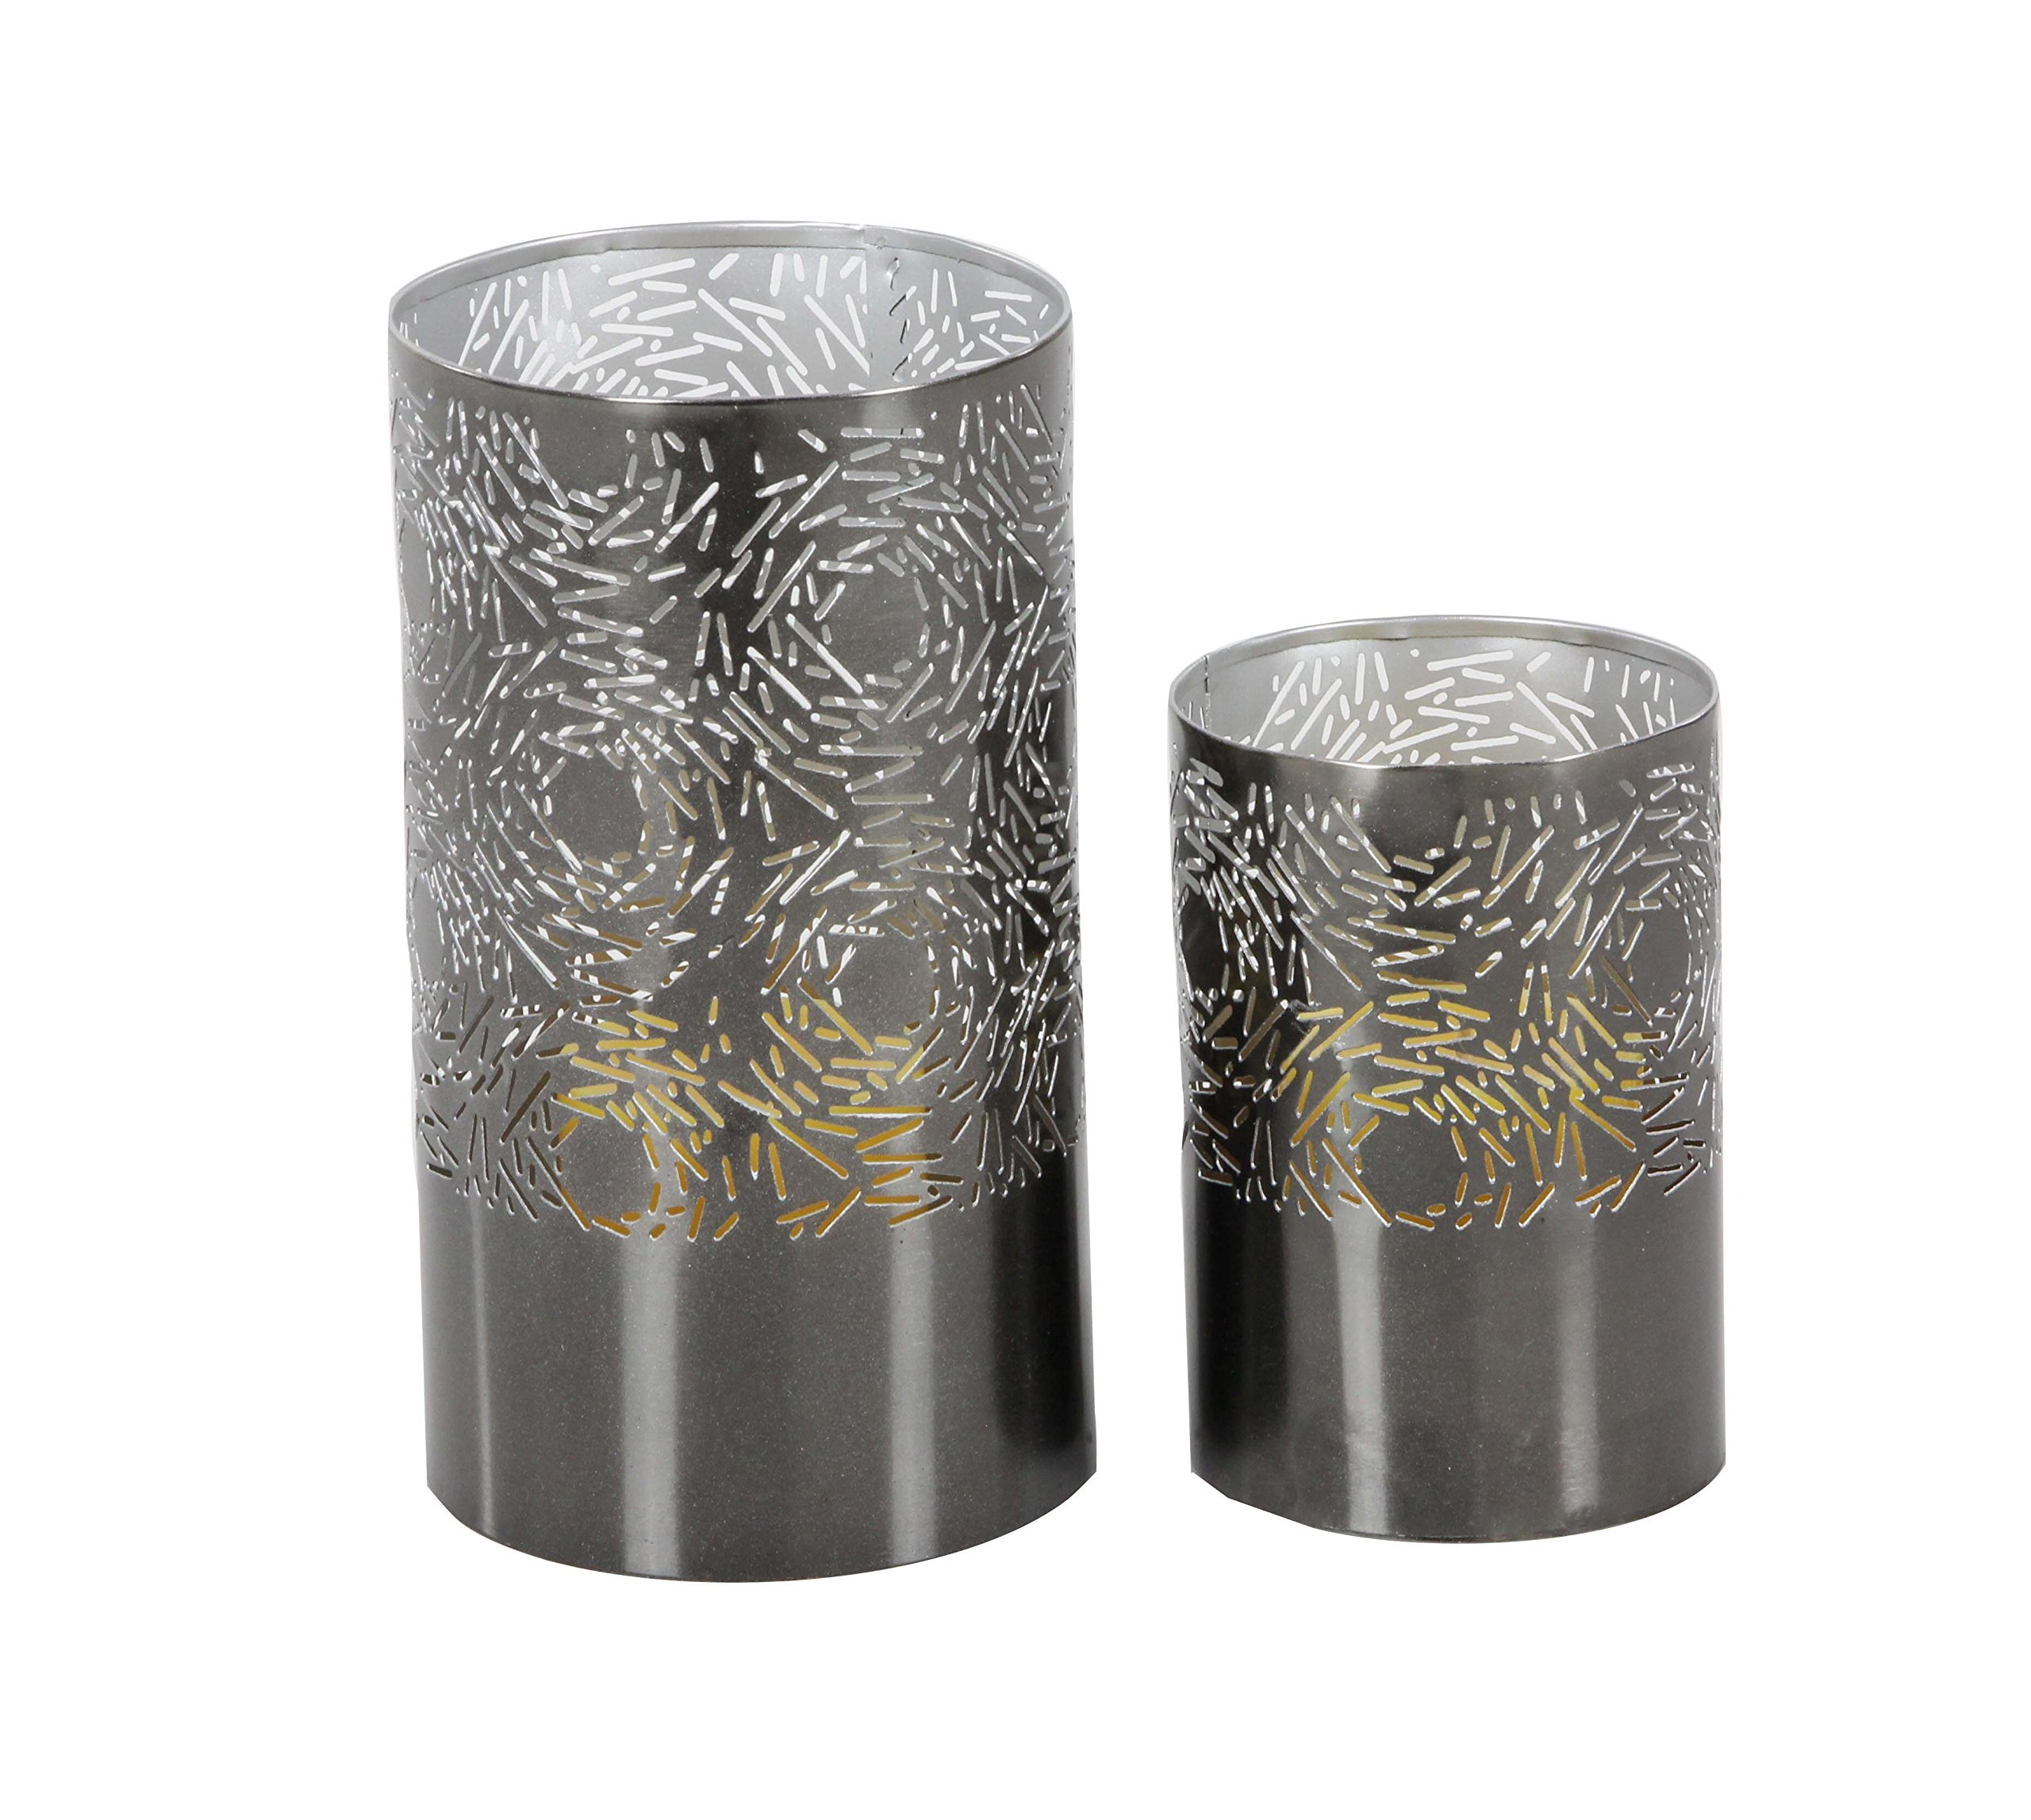 Deco 79 57361 Iron Cylindrical Candle Holders (Set of 2), 6'' x 9'', Gray by Deco 79